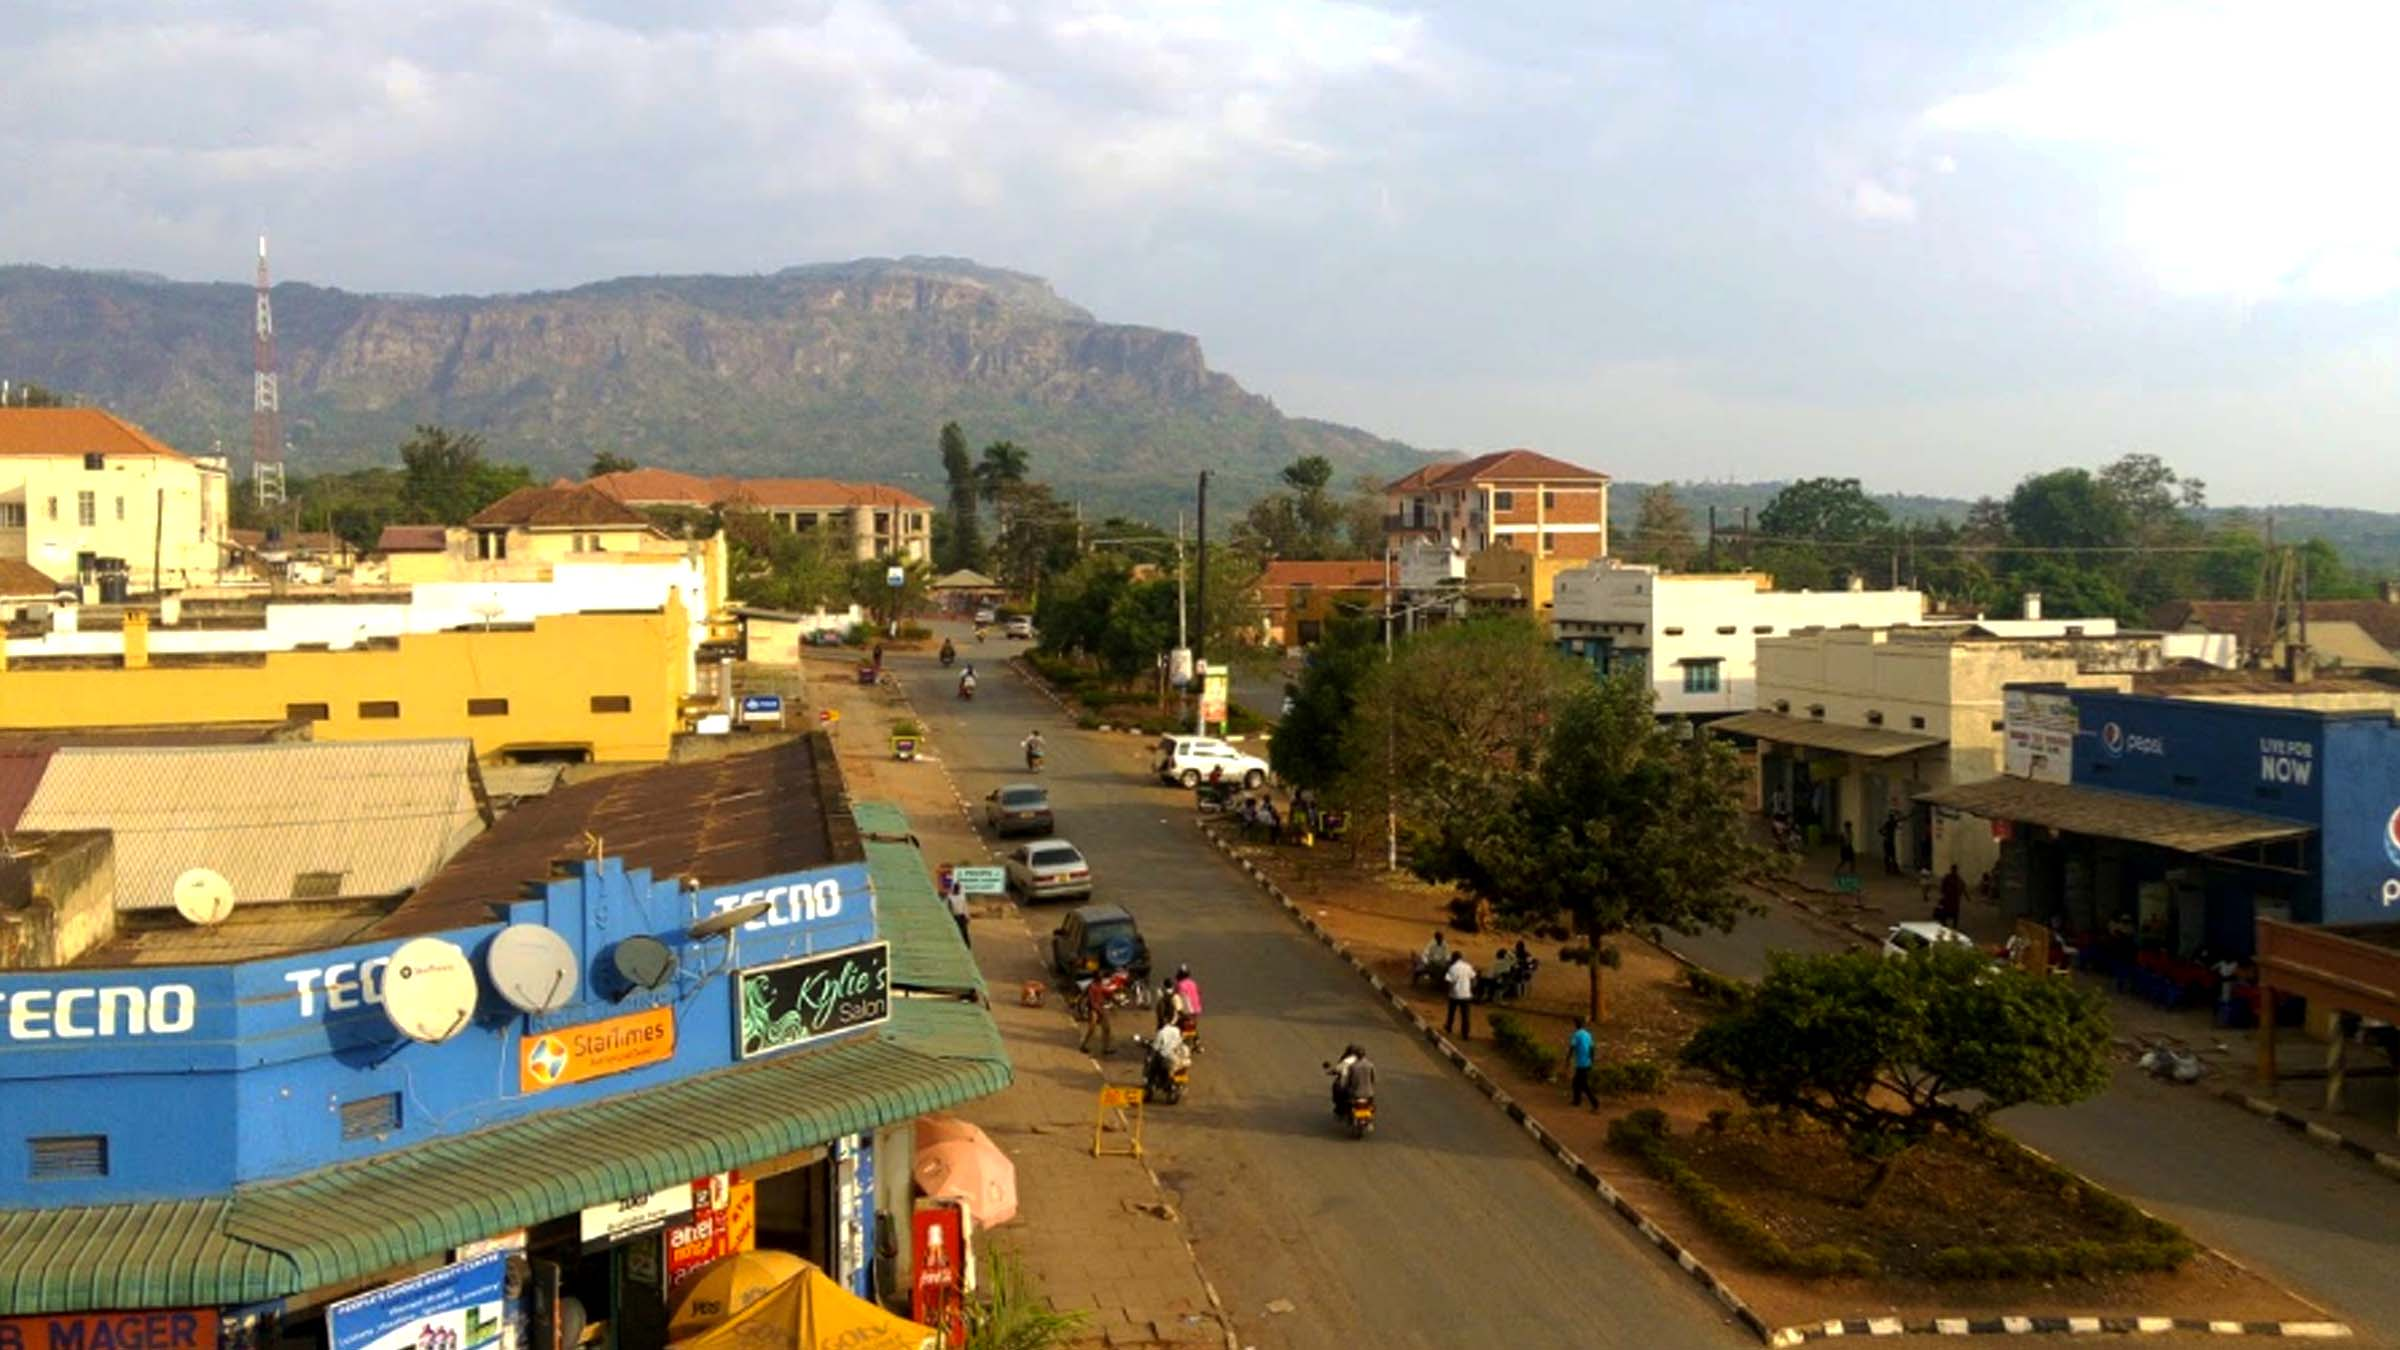 About Mbale Town